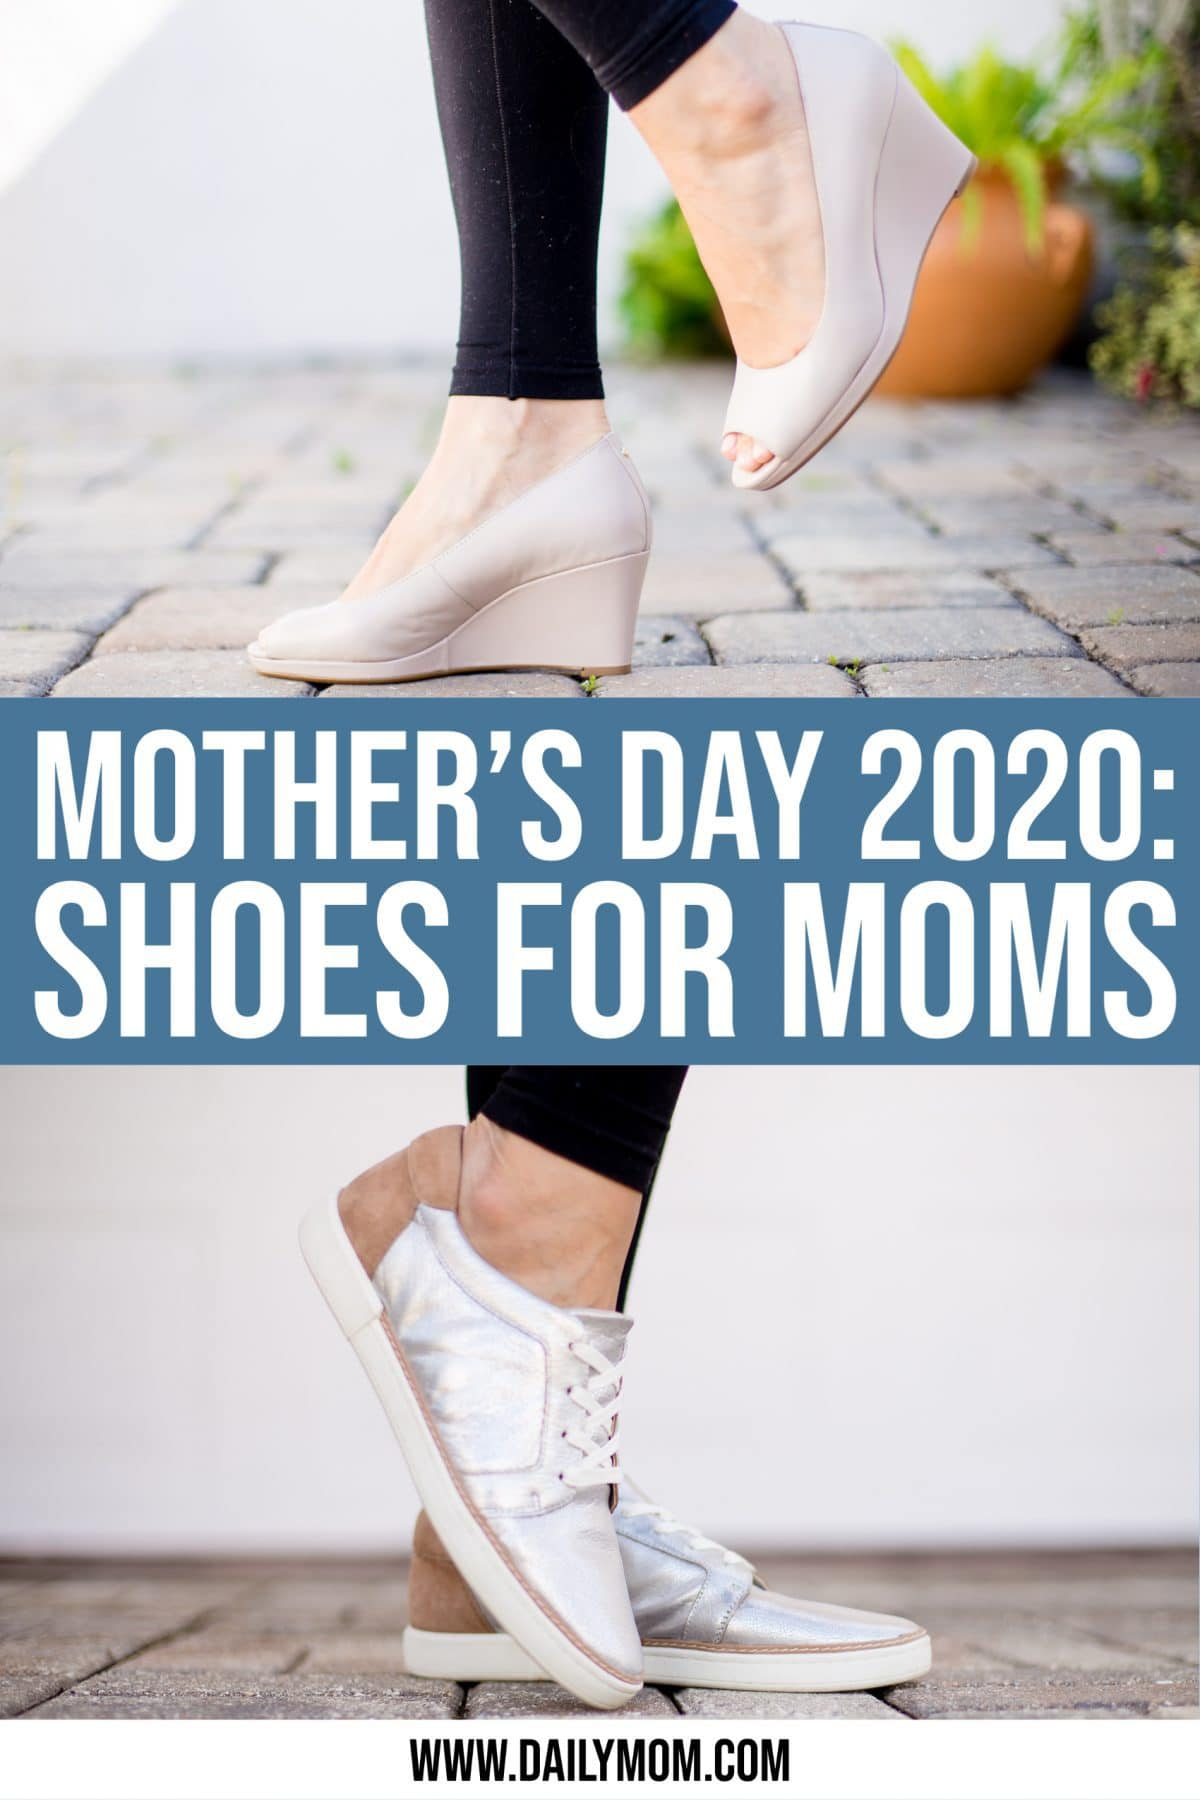 Shoes For Moms